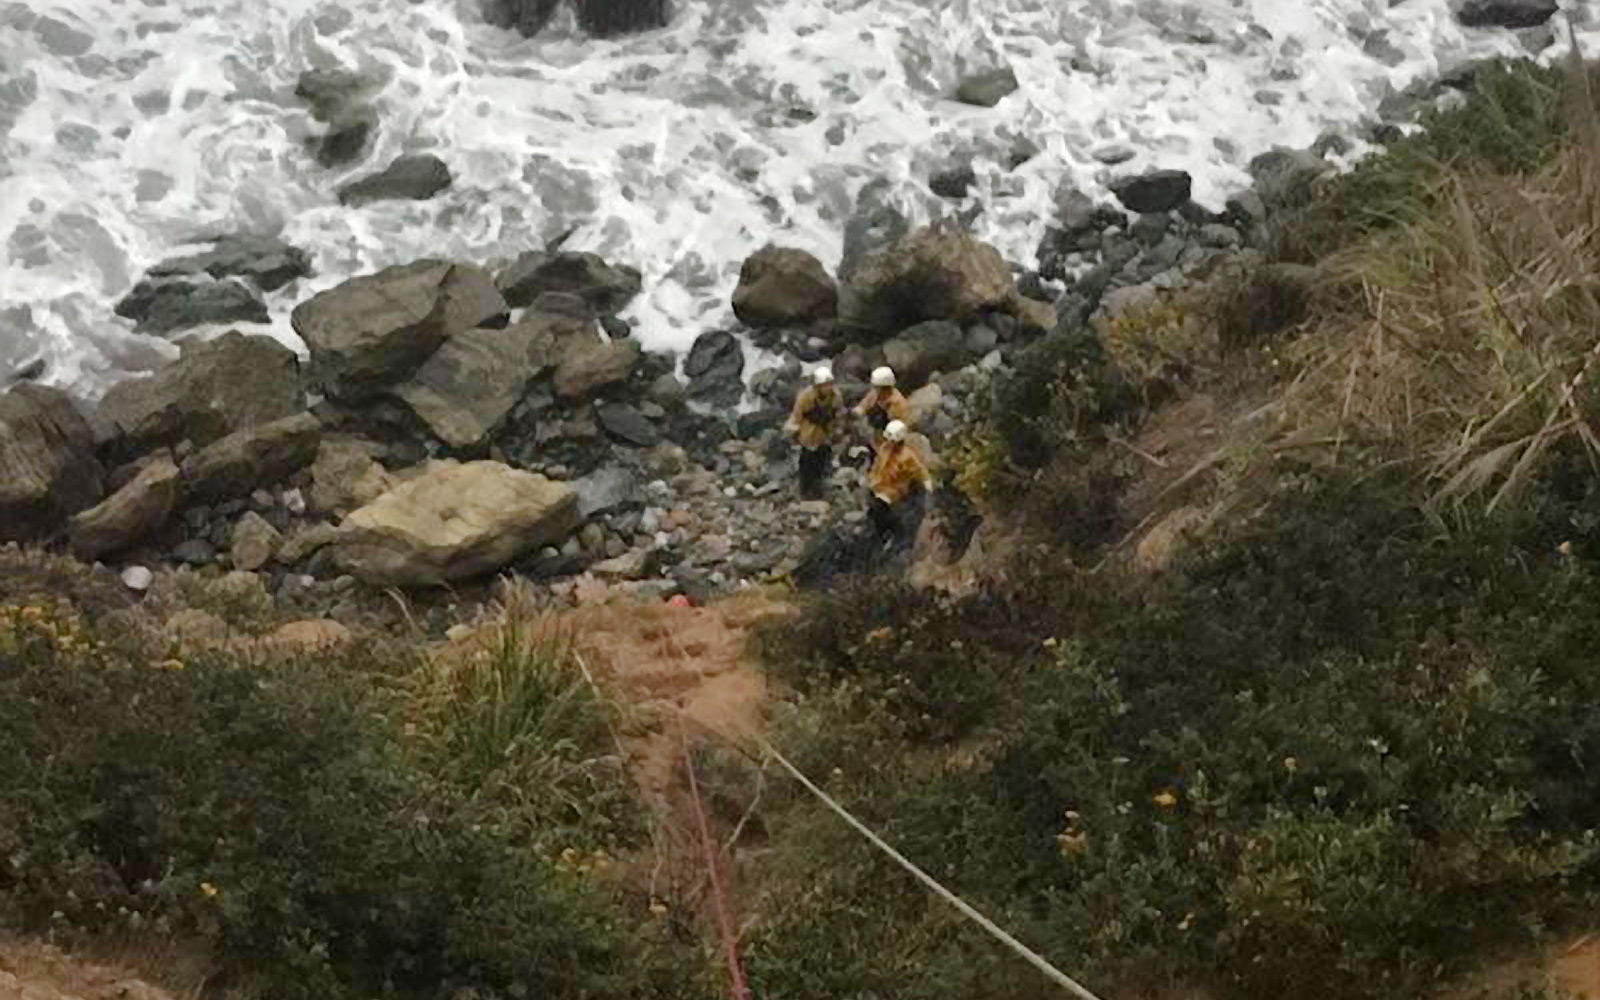 Woman found alive a week after plunging off cliff with car, Big Sur, USA - 13 Jul 2018